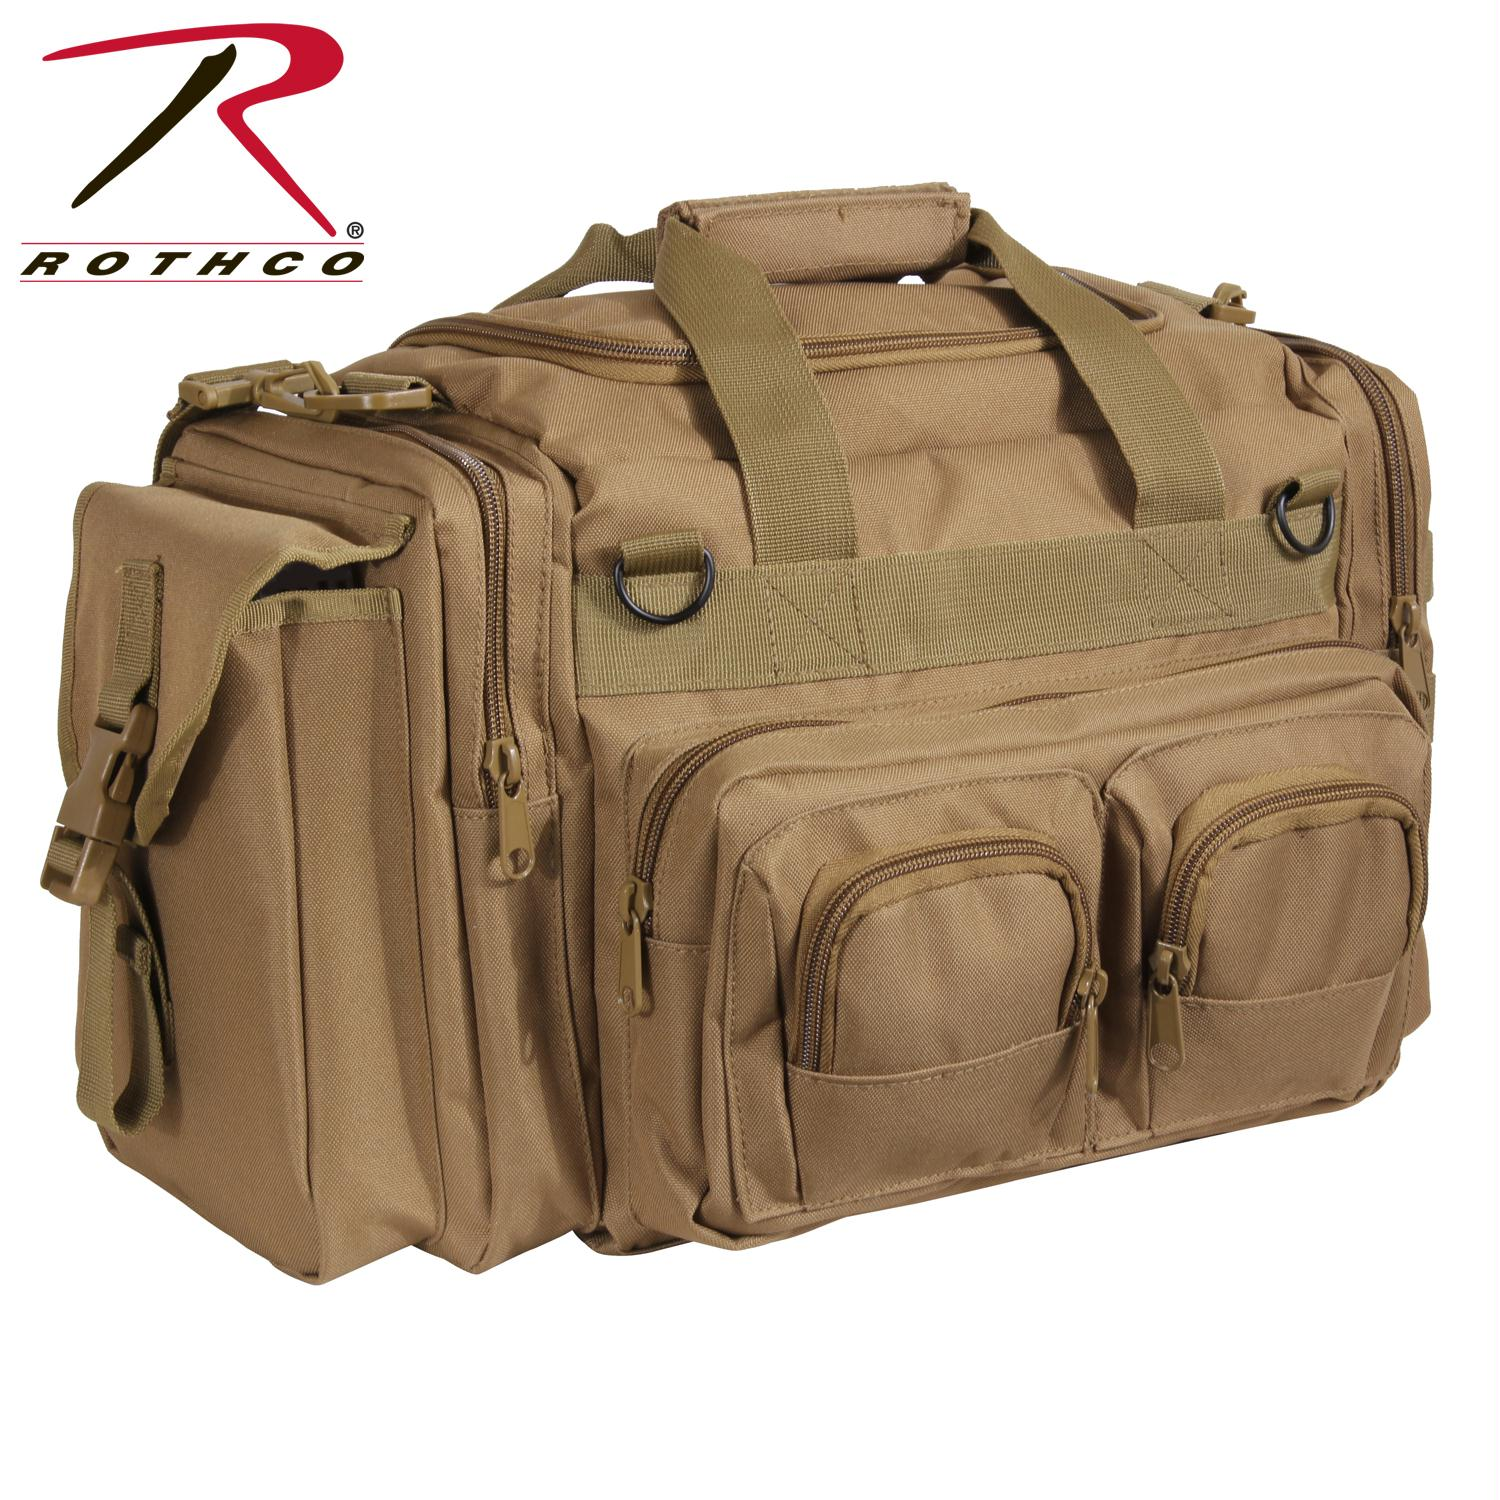 Rothco Concealed Carry Bag - Coyote Brown